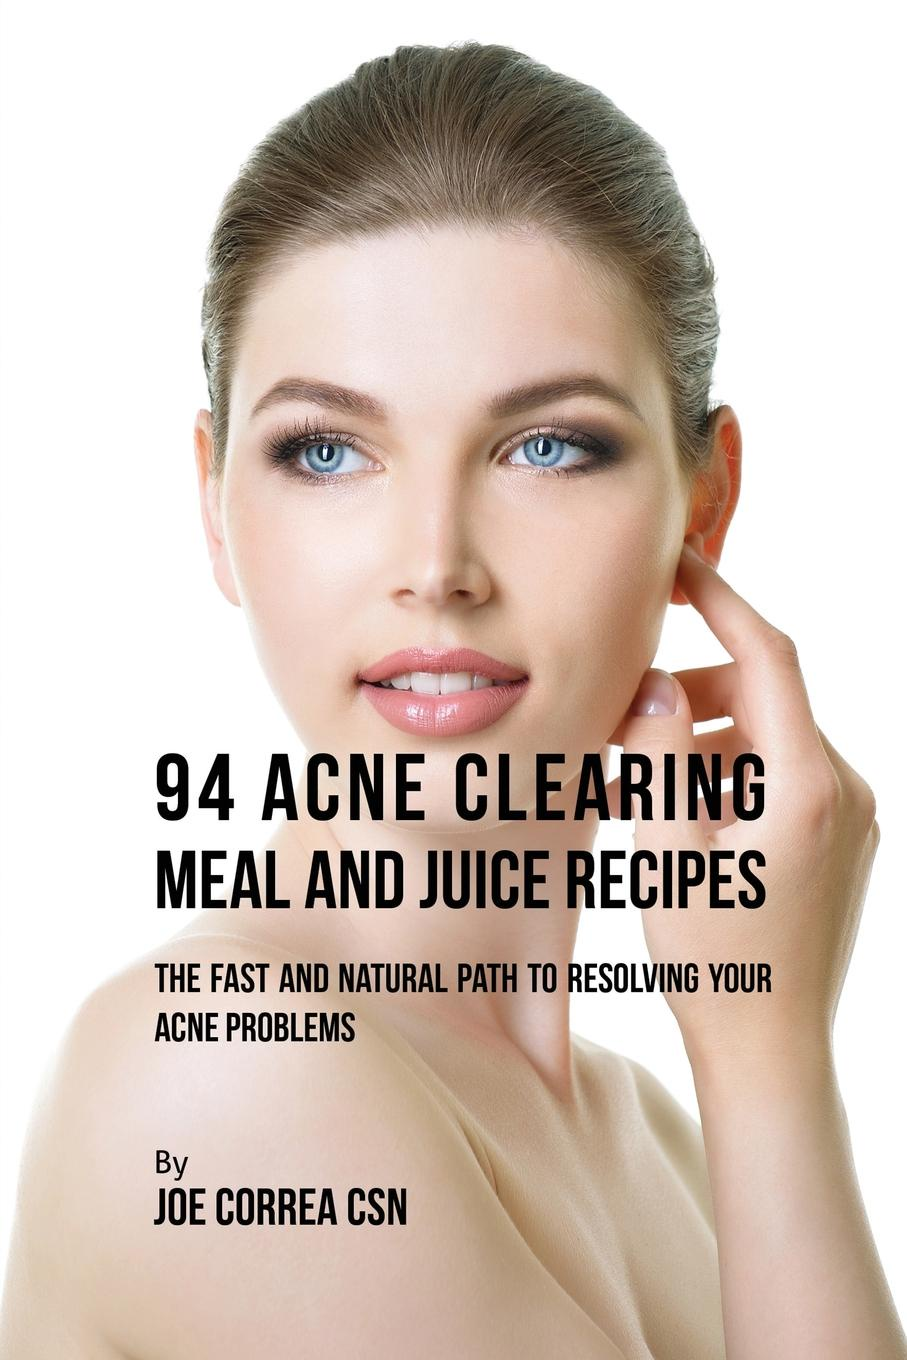 Joe Correa 94 Acne Clearing Meal and Juice Recipes. The Fast and Natural Path to Resolving Your Acne Problems produce omega 3 fatty acids enriched eggs by using fish oil